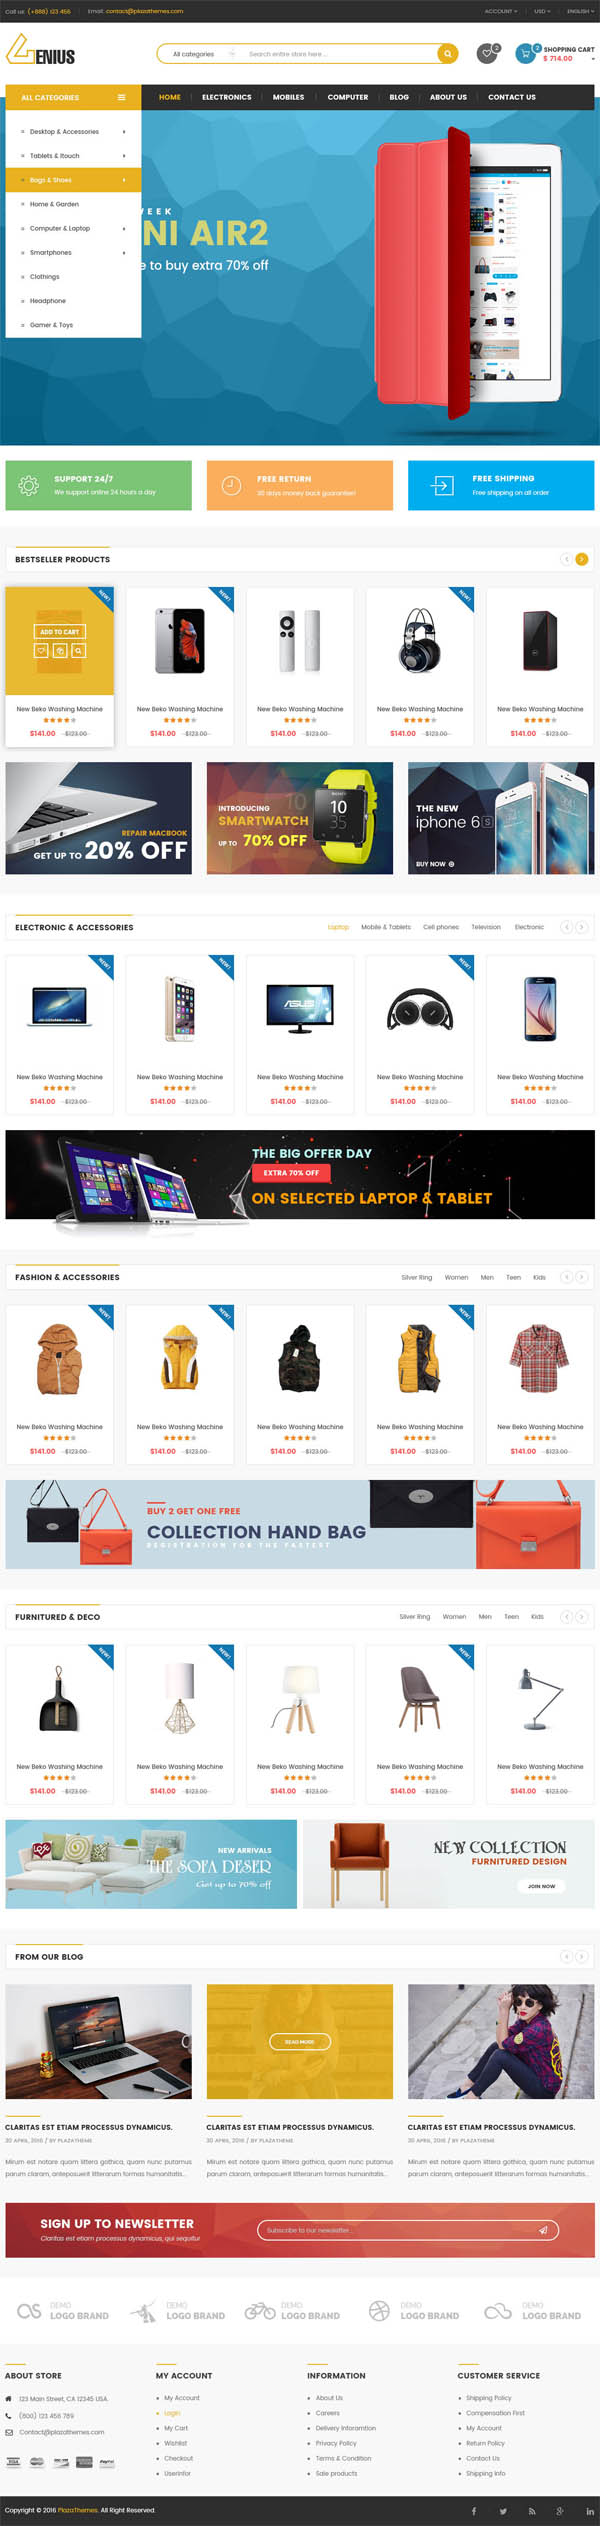 VG Pomer : Perfume Store WooCommerce WordPress Theme